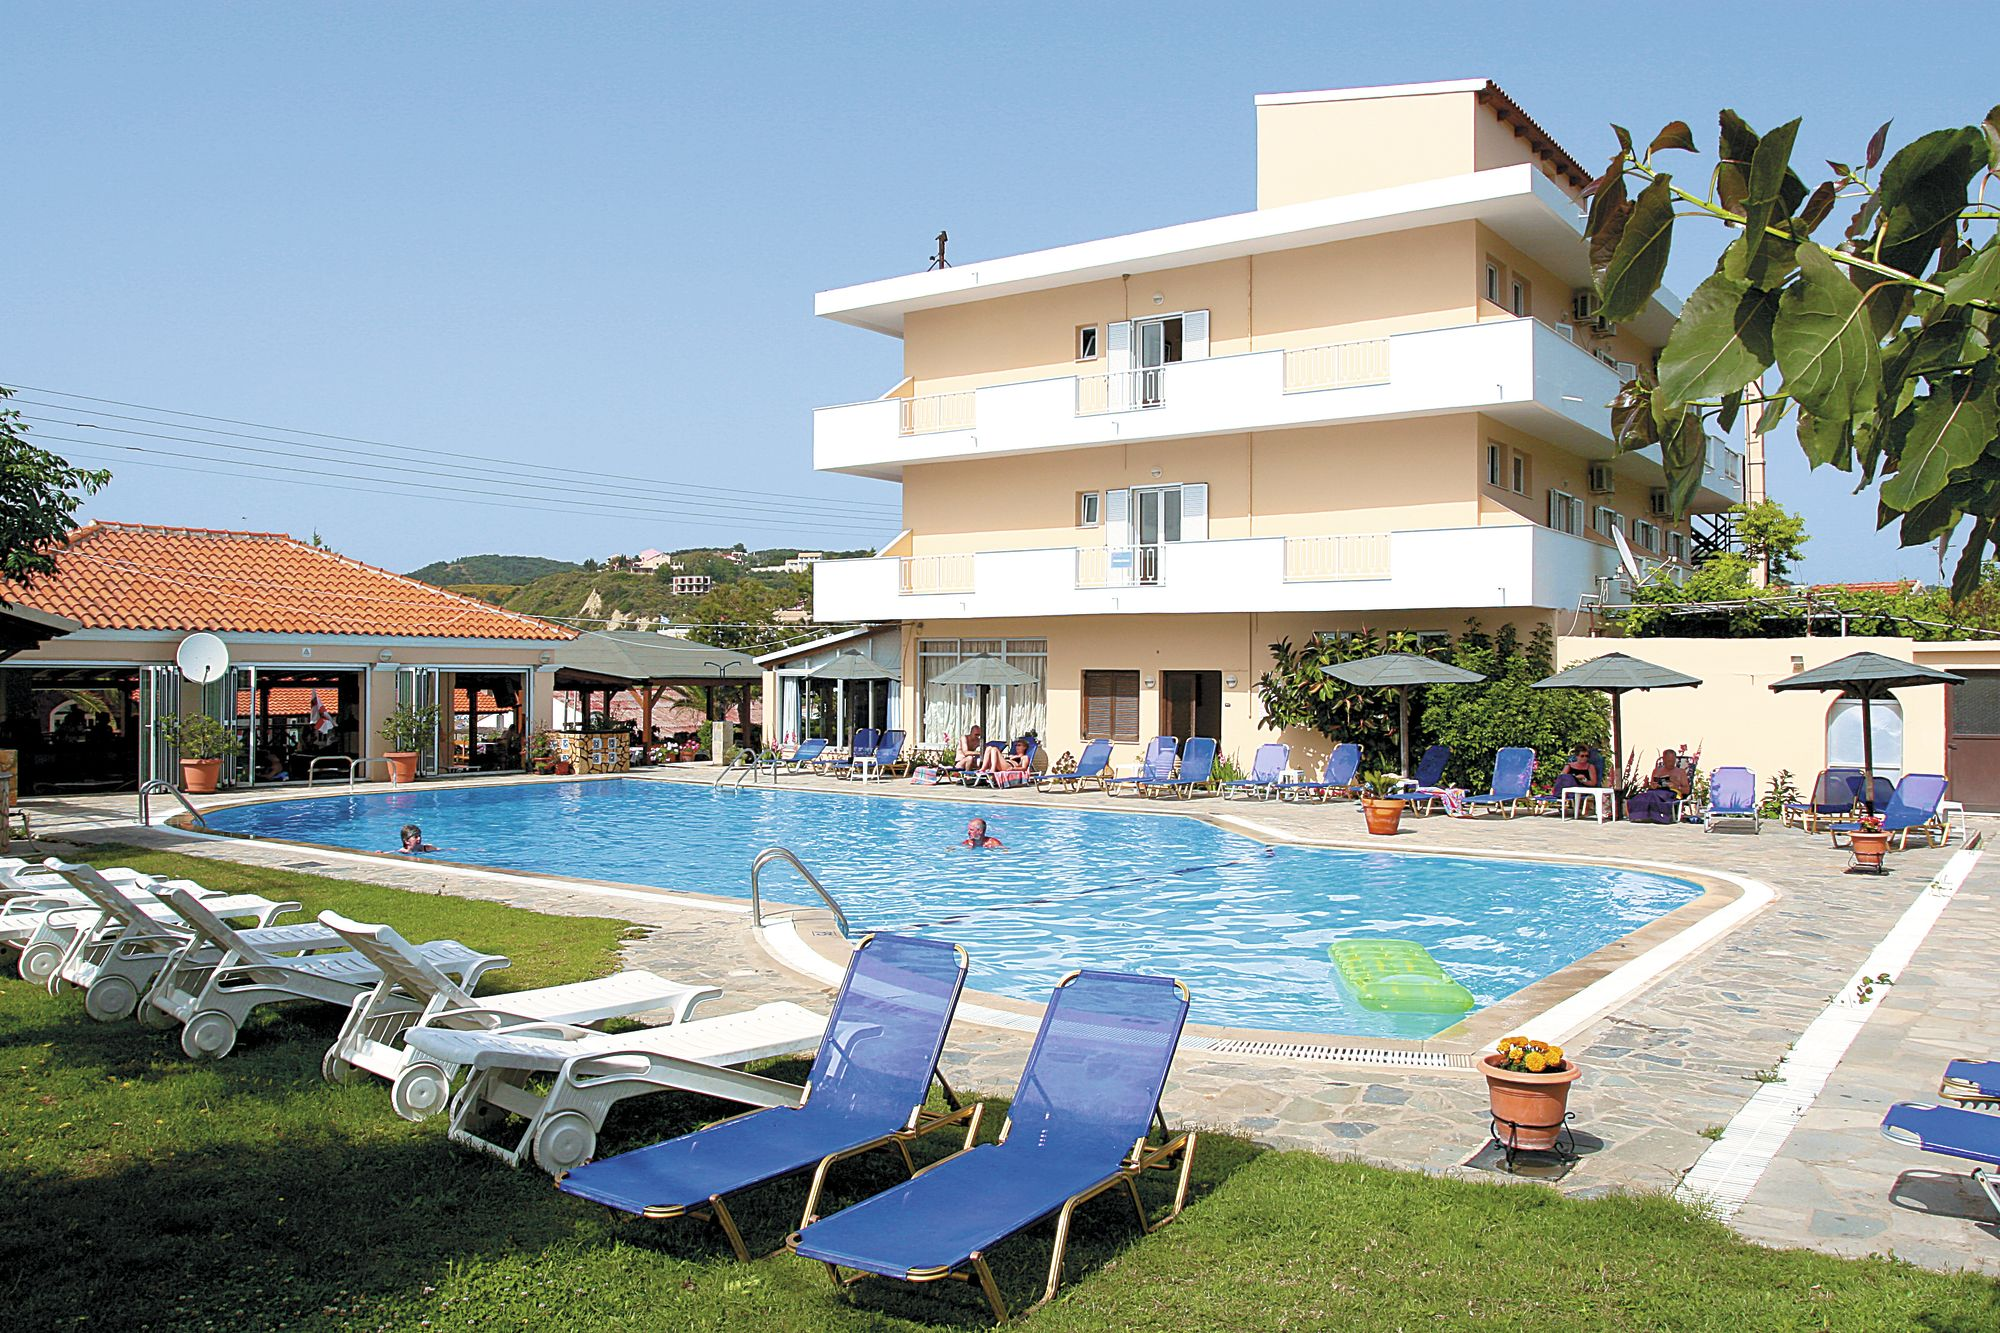 Holiday to Nafsica Hotel in SAN STEFANOS (GREECE) for 3 nights (HB) departing from bournemouth on 08 May